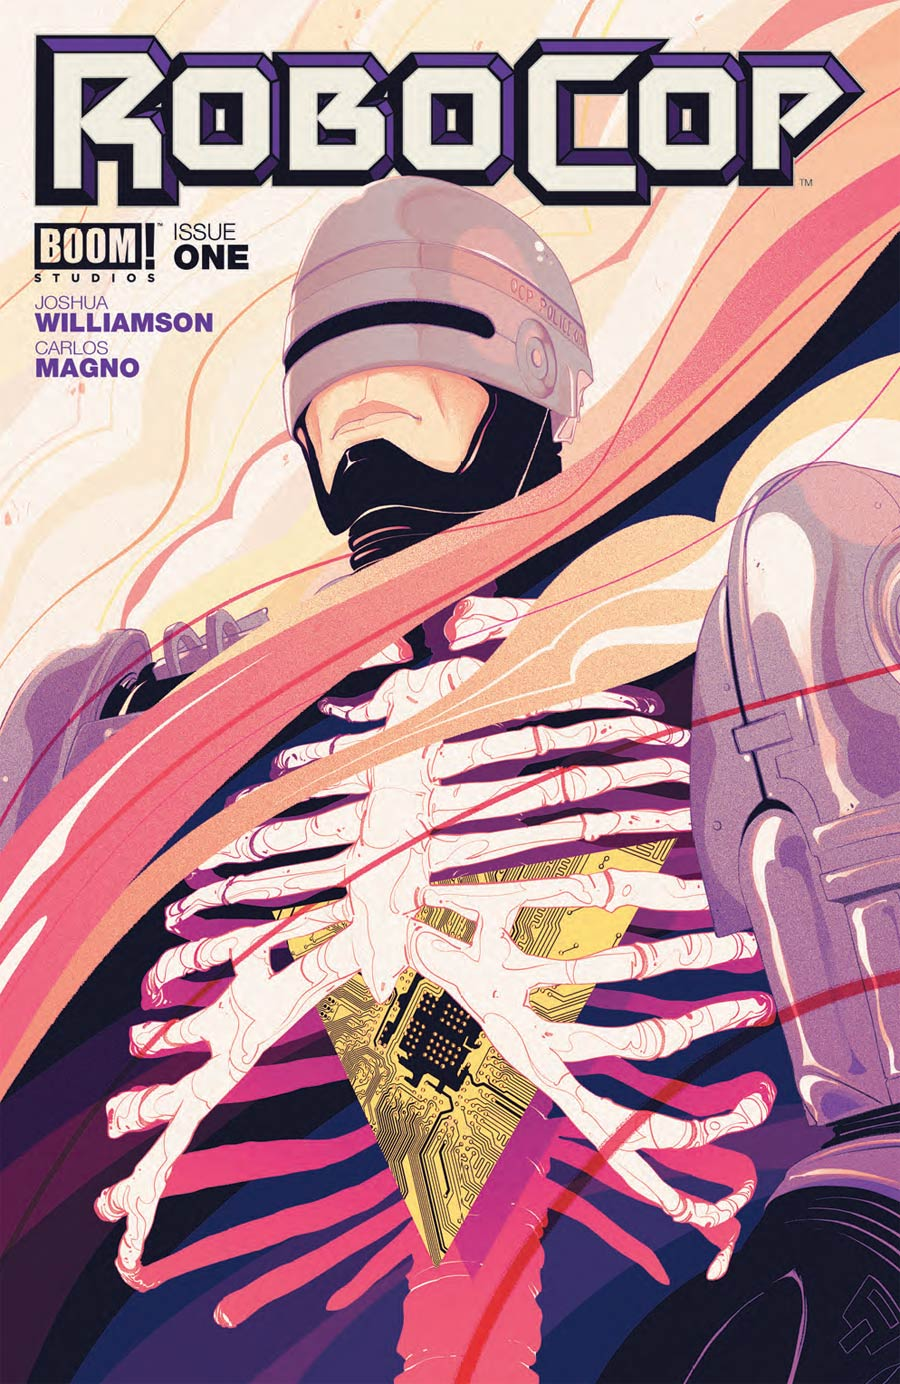 Robocop 2014 #1 Cover A Regular Goni Montes Cover